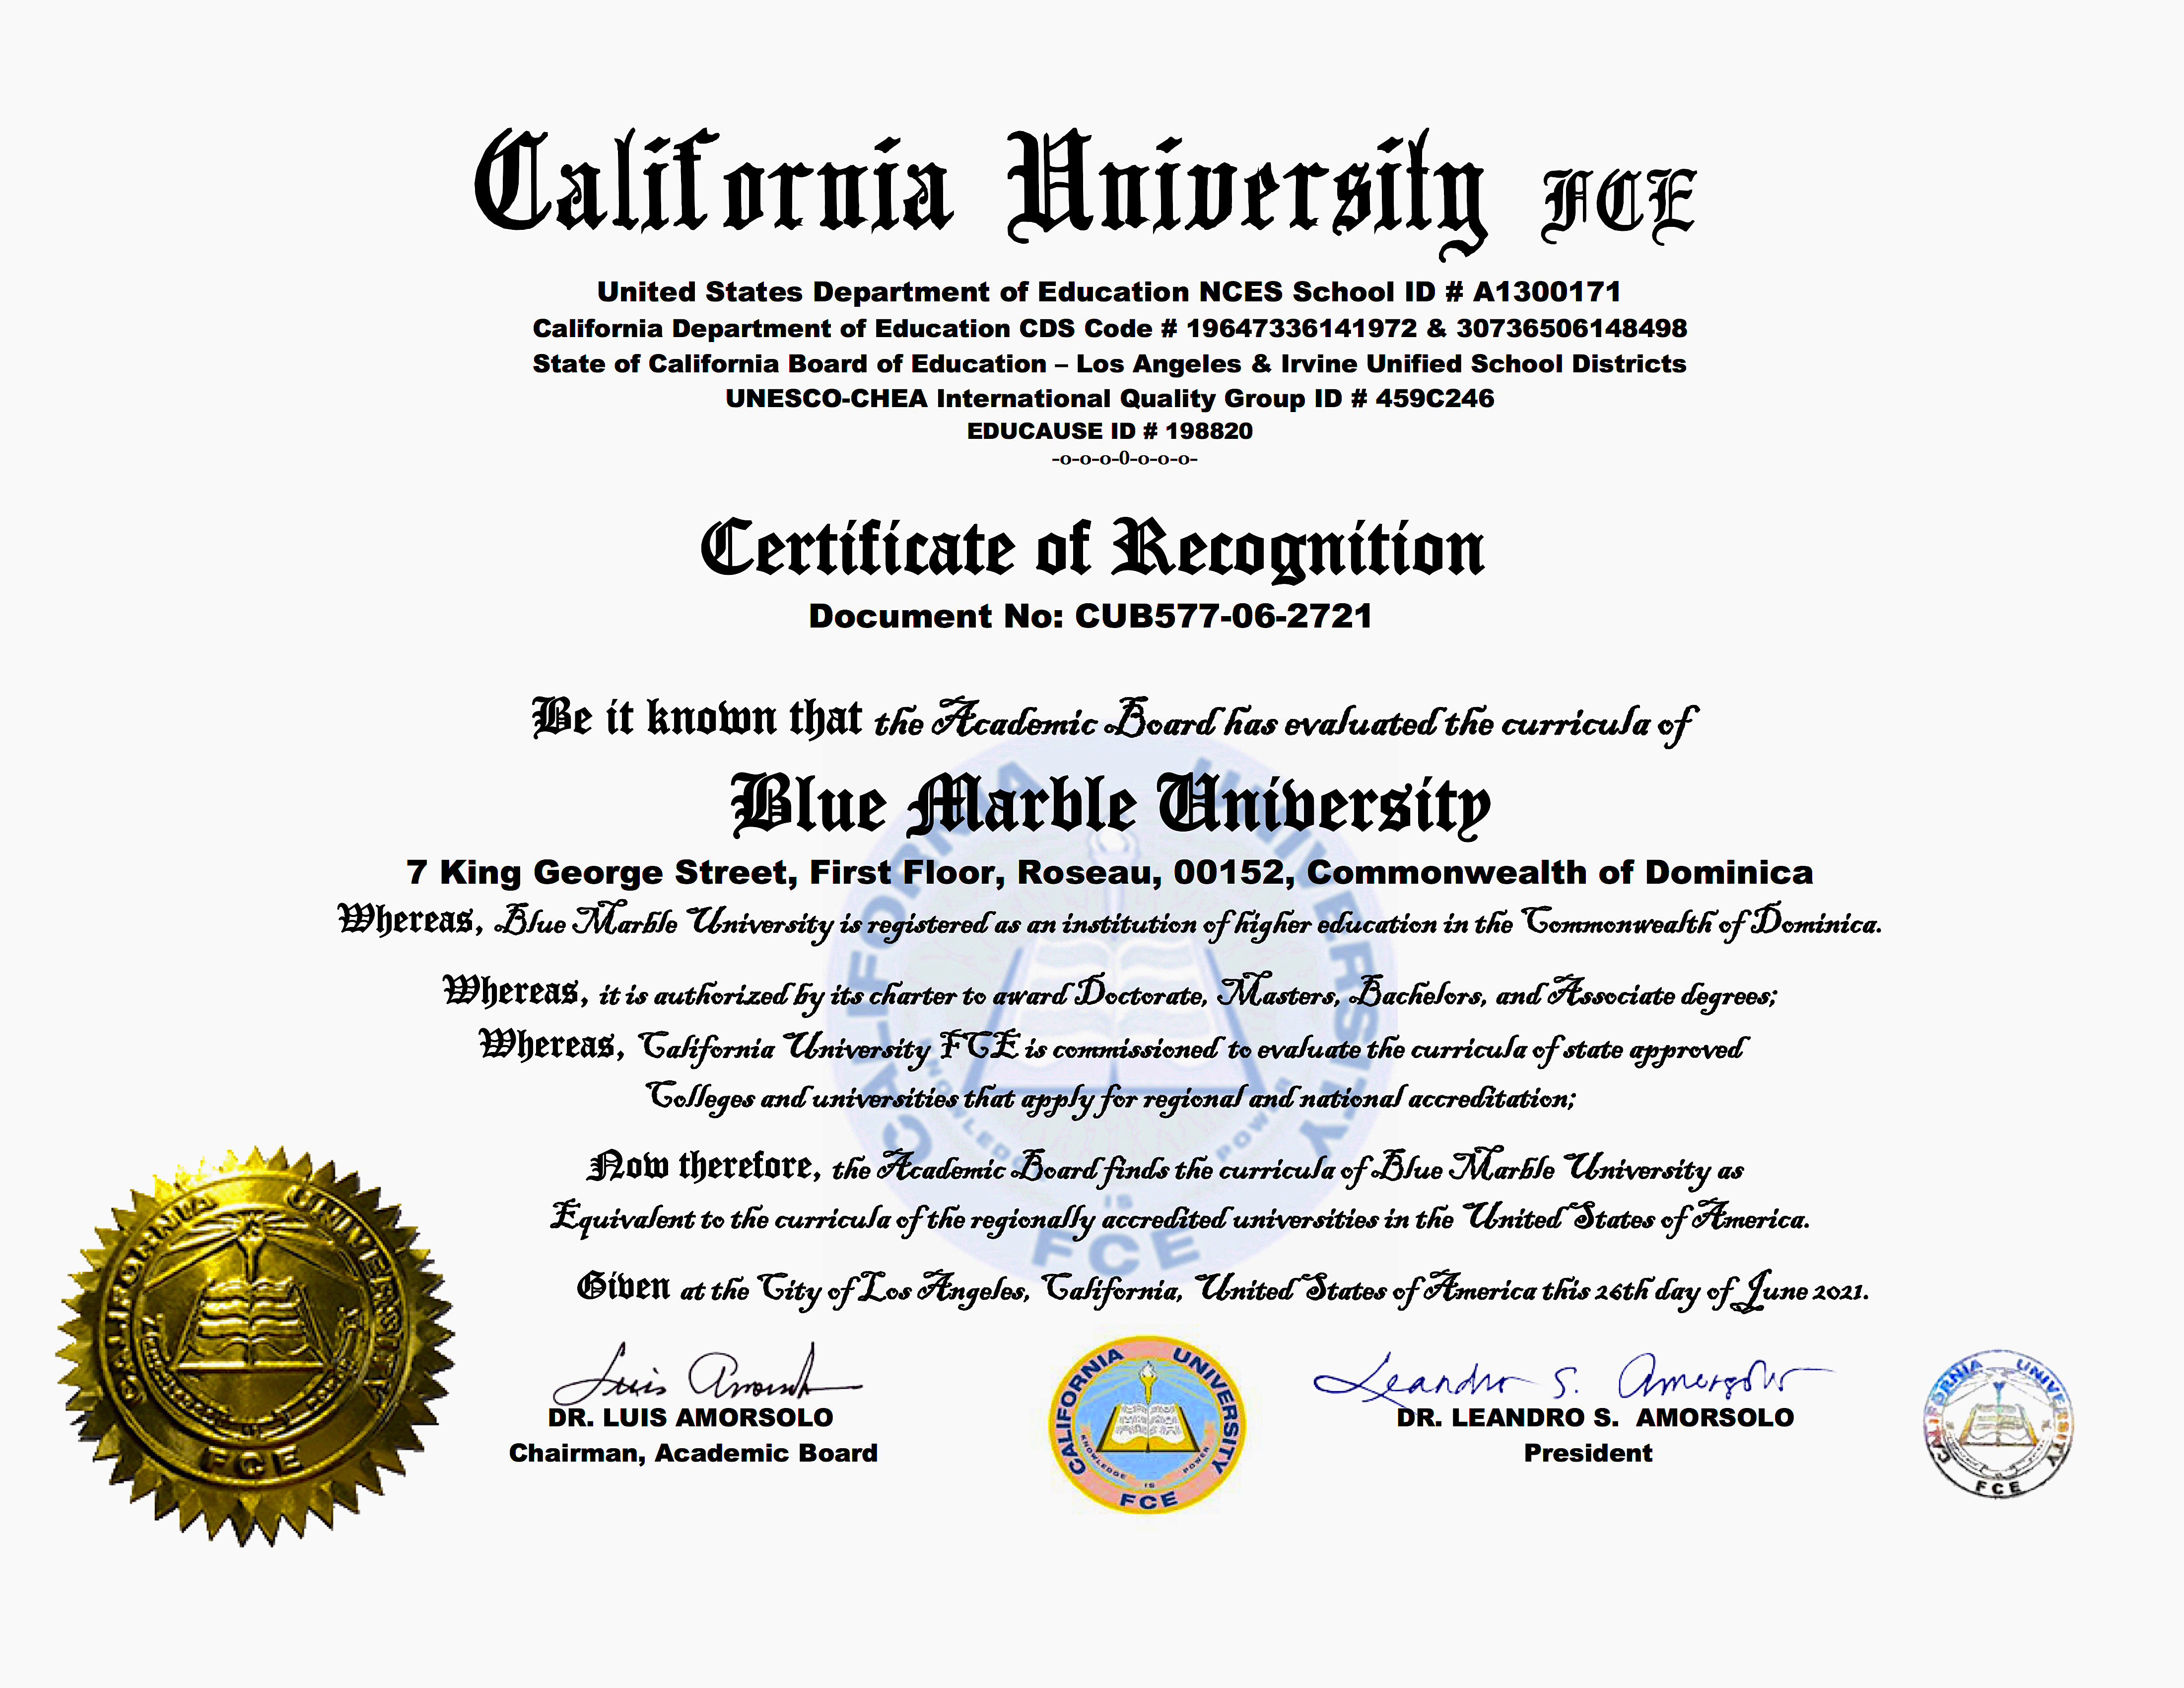 Blue Marble University Certificate of Recognition. June 26, 2021. Be it known that the Academic Board has evaluated the Curricula of Blue Marble University, Roseau, Commonwealth of Dominica, and finds the Curricula equivalent to that of regionally accredited universities in the United States of America. The world's foremost authority on foreign education credentials, CUFCE, has passed upon the doctoral program offerings of Blue Marble University and found them equivalent to US colleges and university. The equivalency of Blue Marble University doctoral degrees to US collegesa nd universities now certified by CUFCE, the leading authority on foreign education review. Blue Marble University now accredited by CUFCE, California University Foreign Credential Evaluation Service,  as being the same as any regionally accredited US college or university